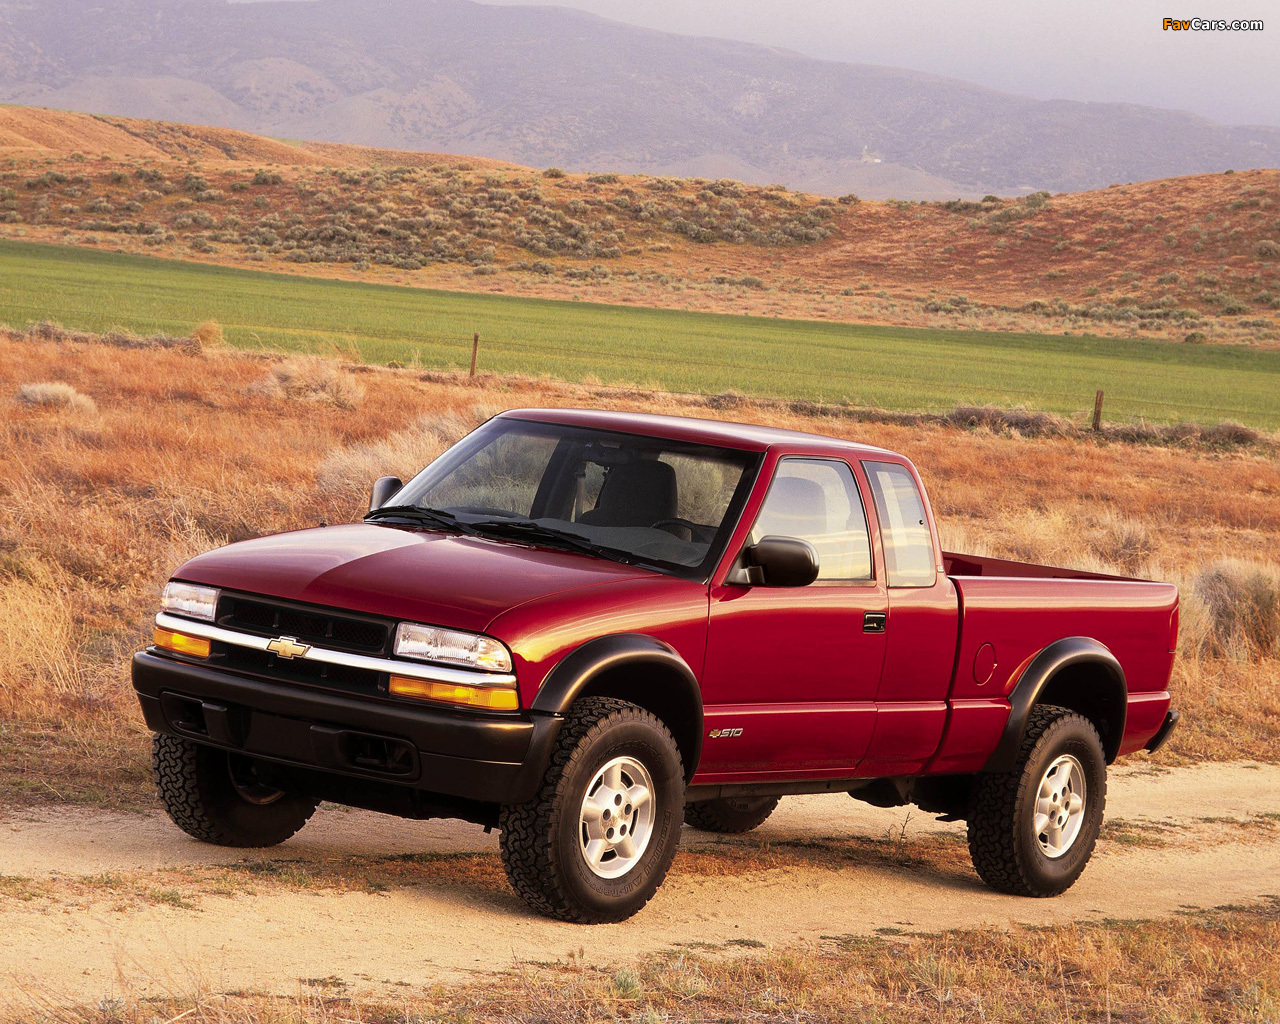 chevrolet s 10 zr2 extended cab 1998 2003 photos 1280x1024. Black Bedroom Furniture Sets. Home Design Ideas